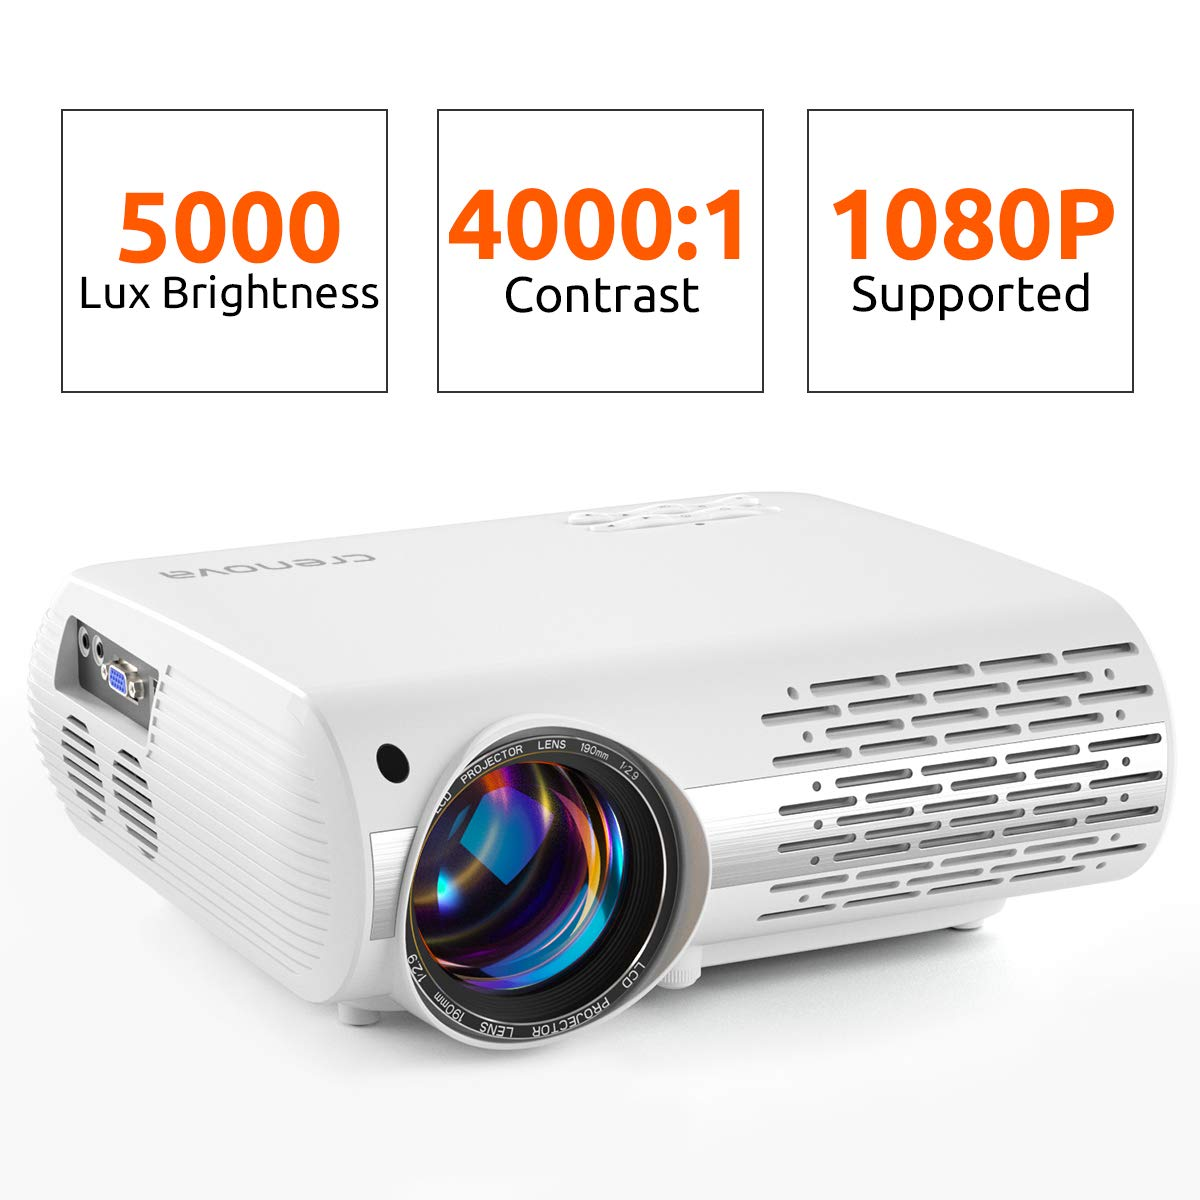 """Crenova Video Projector, 6000 Lux Home Movie Projector(550 ANSI), 200"""" Display HD LED Projector 1080P Supported, Work with Phone, PC, Mac, TV Stick, PS4, HDMI, USB for Home Theater (Projector)"""